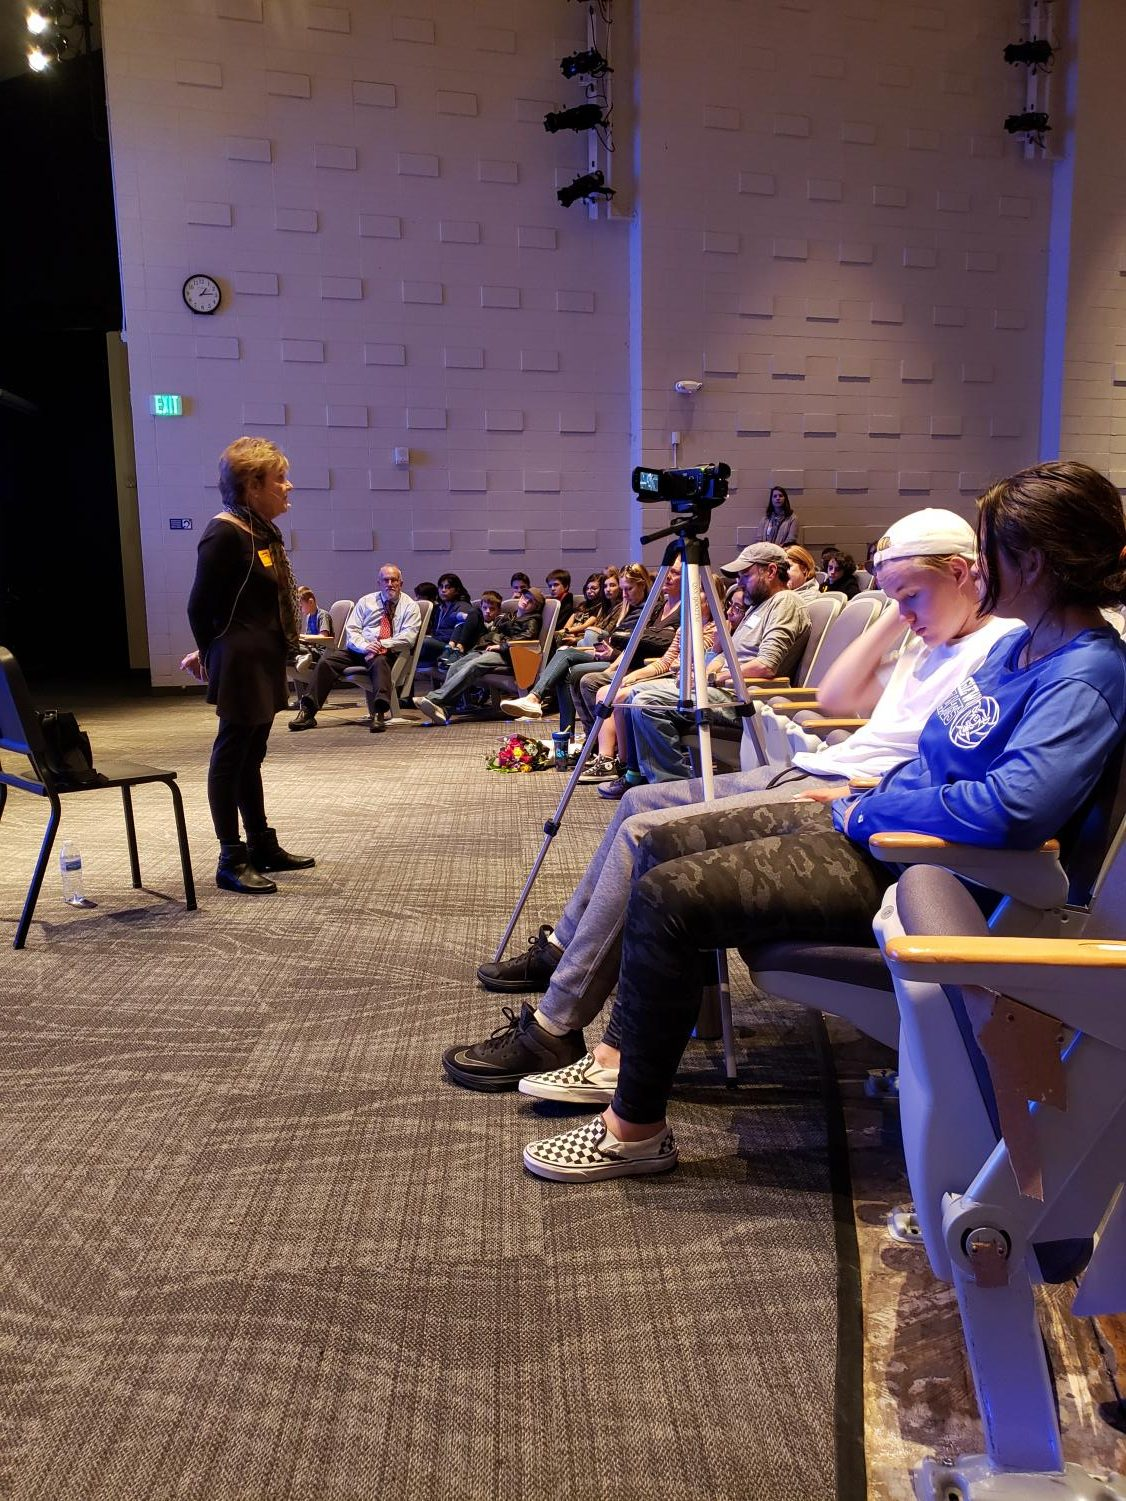 Holocaust+survivor+Estelle+Nadel+speaks+to+students+about+her+experiences+with+German+soldiers+during+WW2.+Broadcast+Journalism+students+were+honored+to+sit+in+on+the+session+and+record+her+story.+